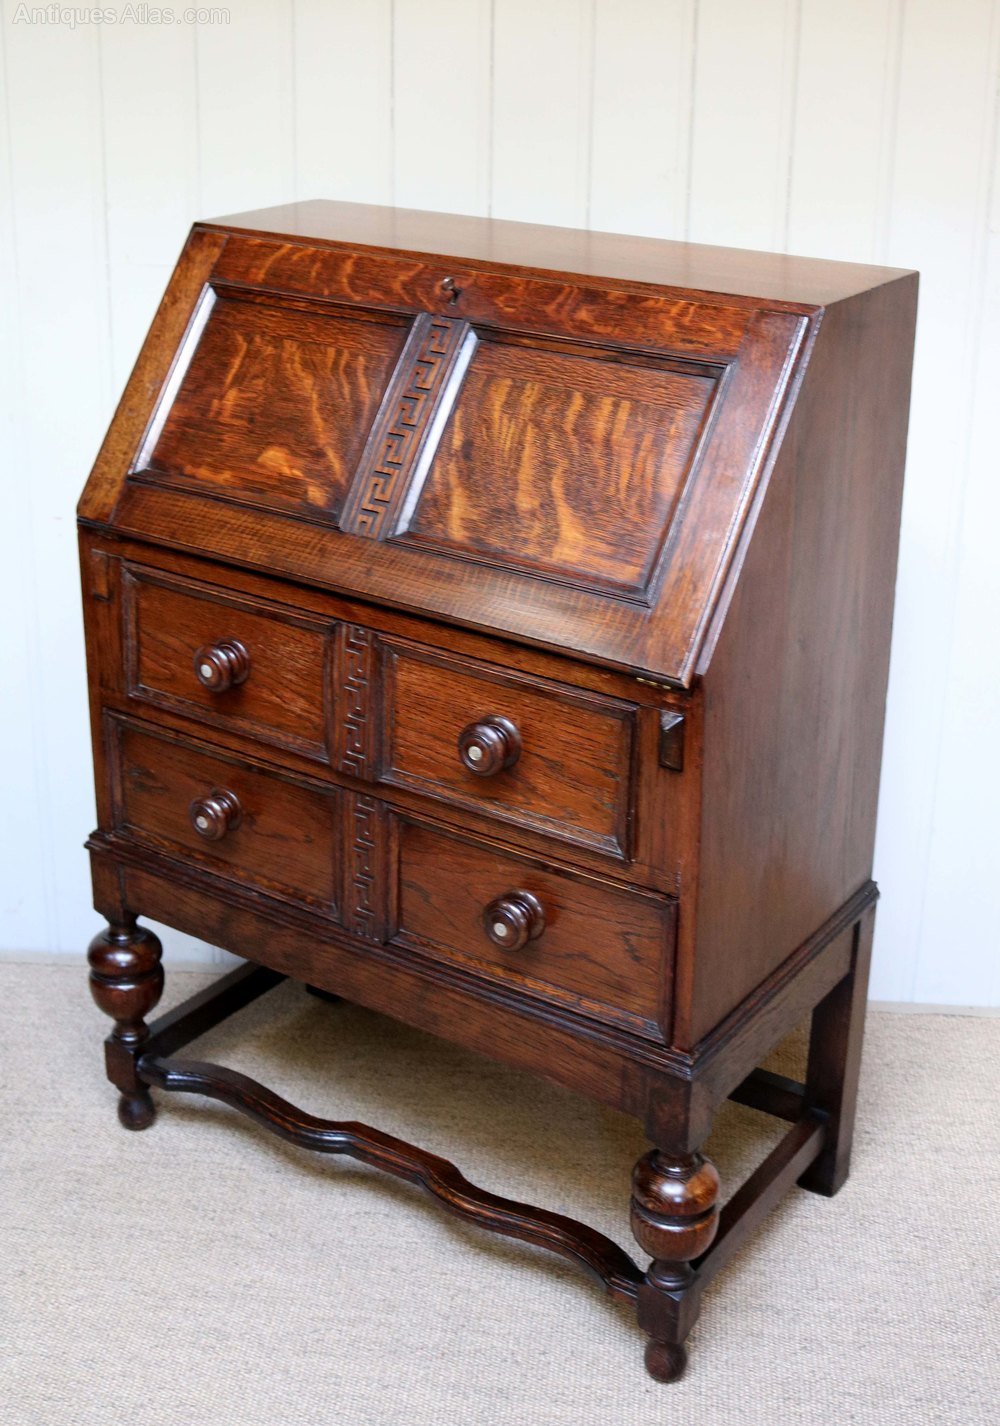 1920s oak bureau antiques atlas for Bureau antique